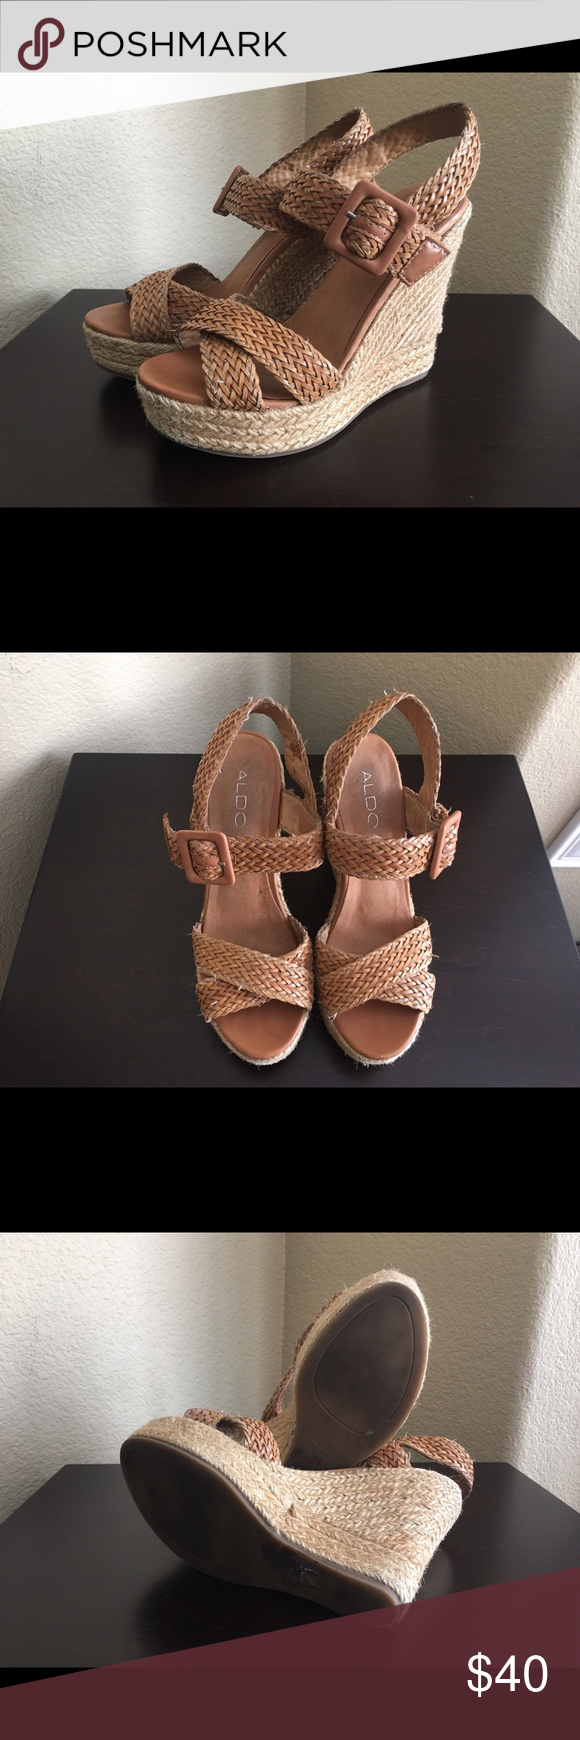 Aldo wedges Braided Aldo wedges perfect for summer size 6.5 ALDO Shoes Wedges